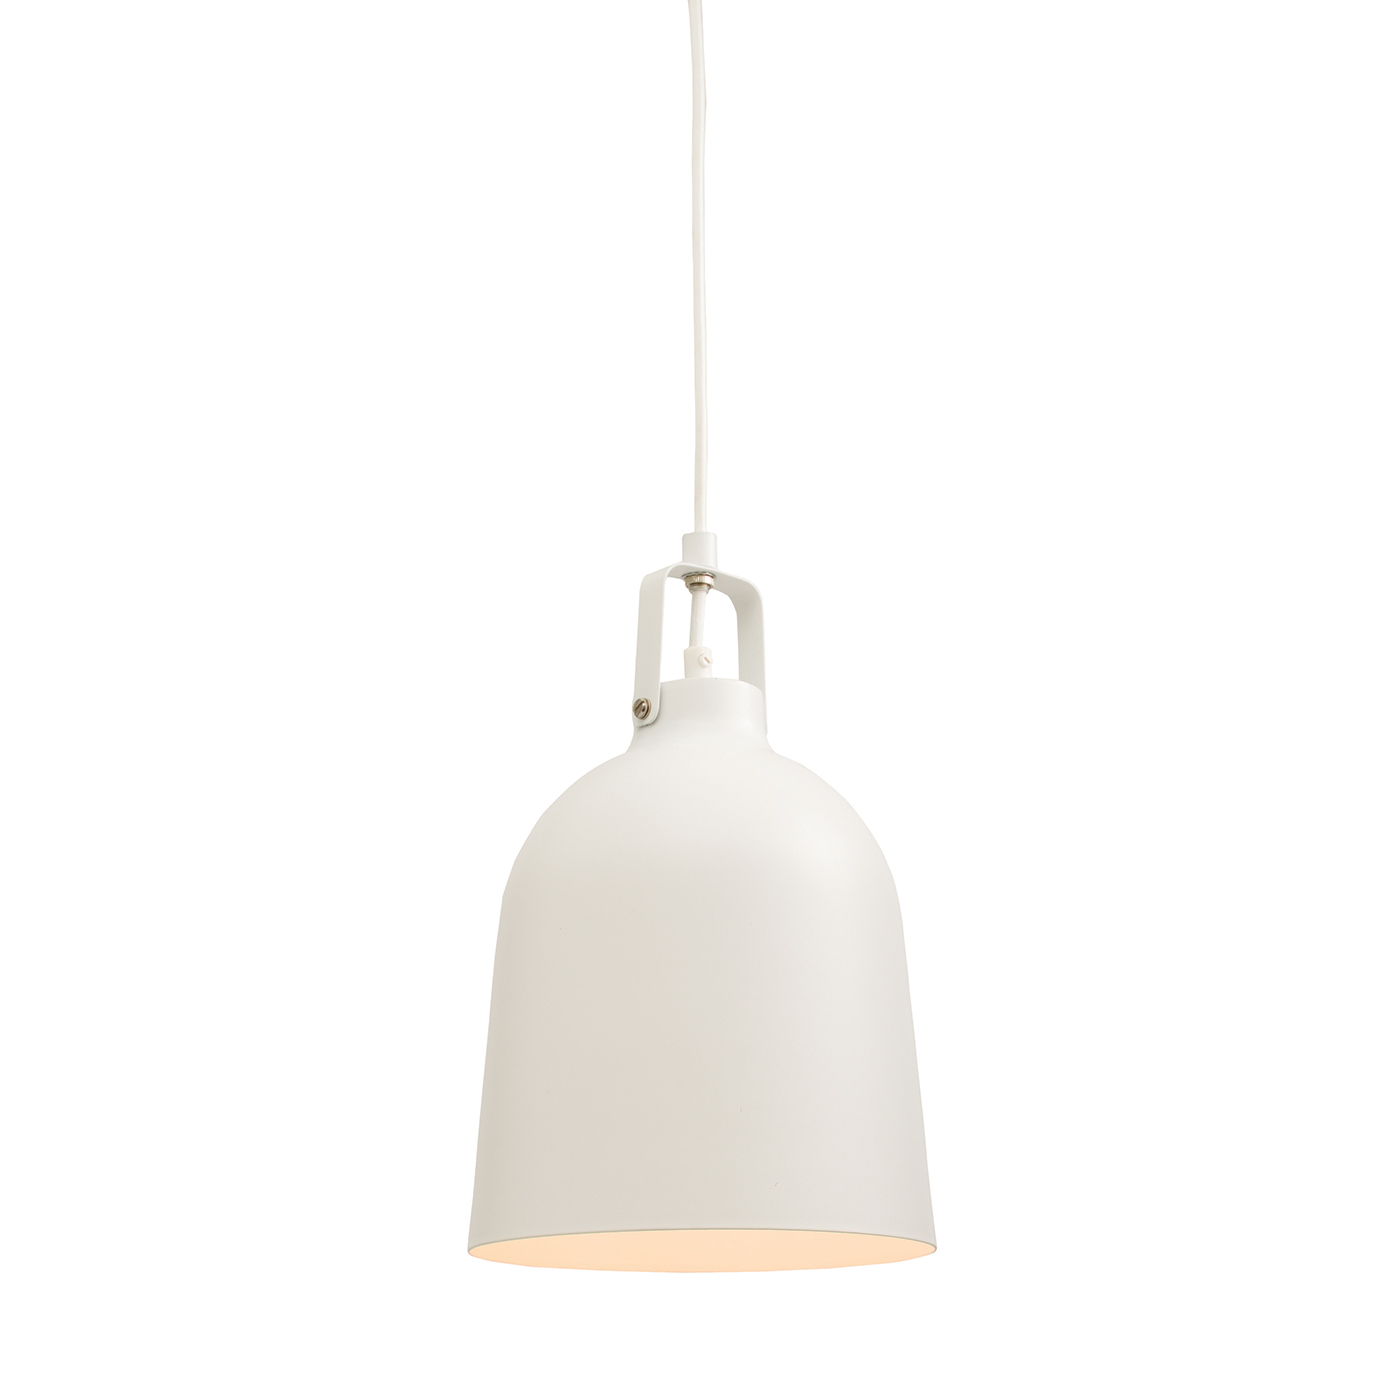 Endon Lazenby pendant 1x 60W Matt white paint